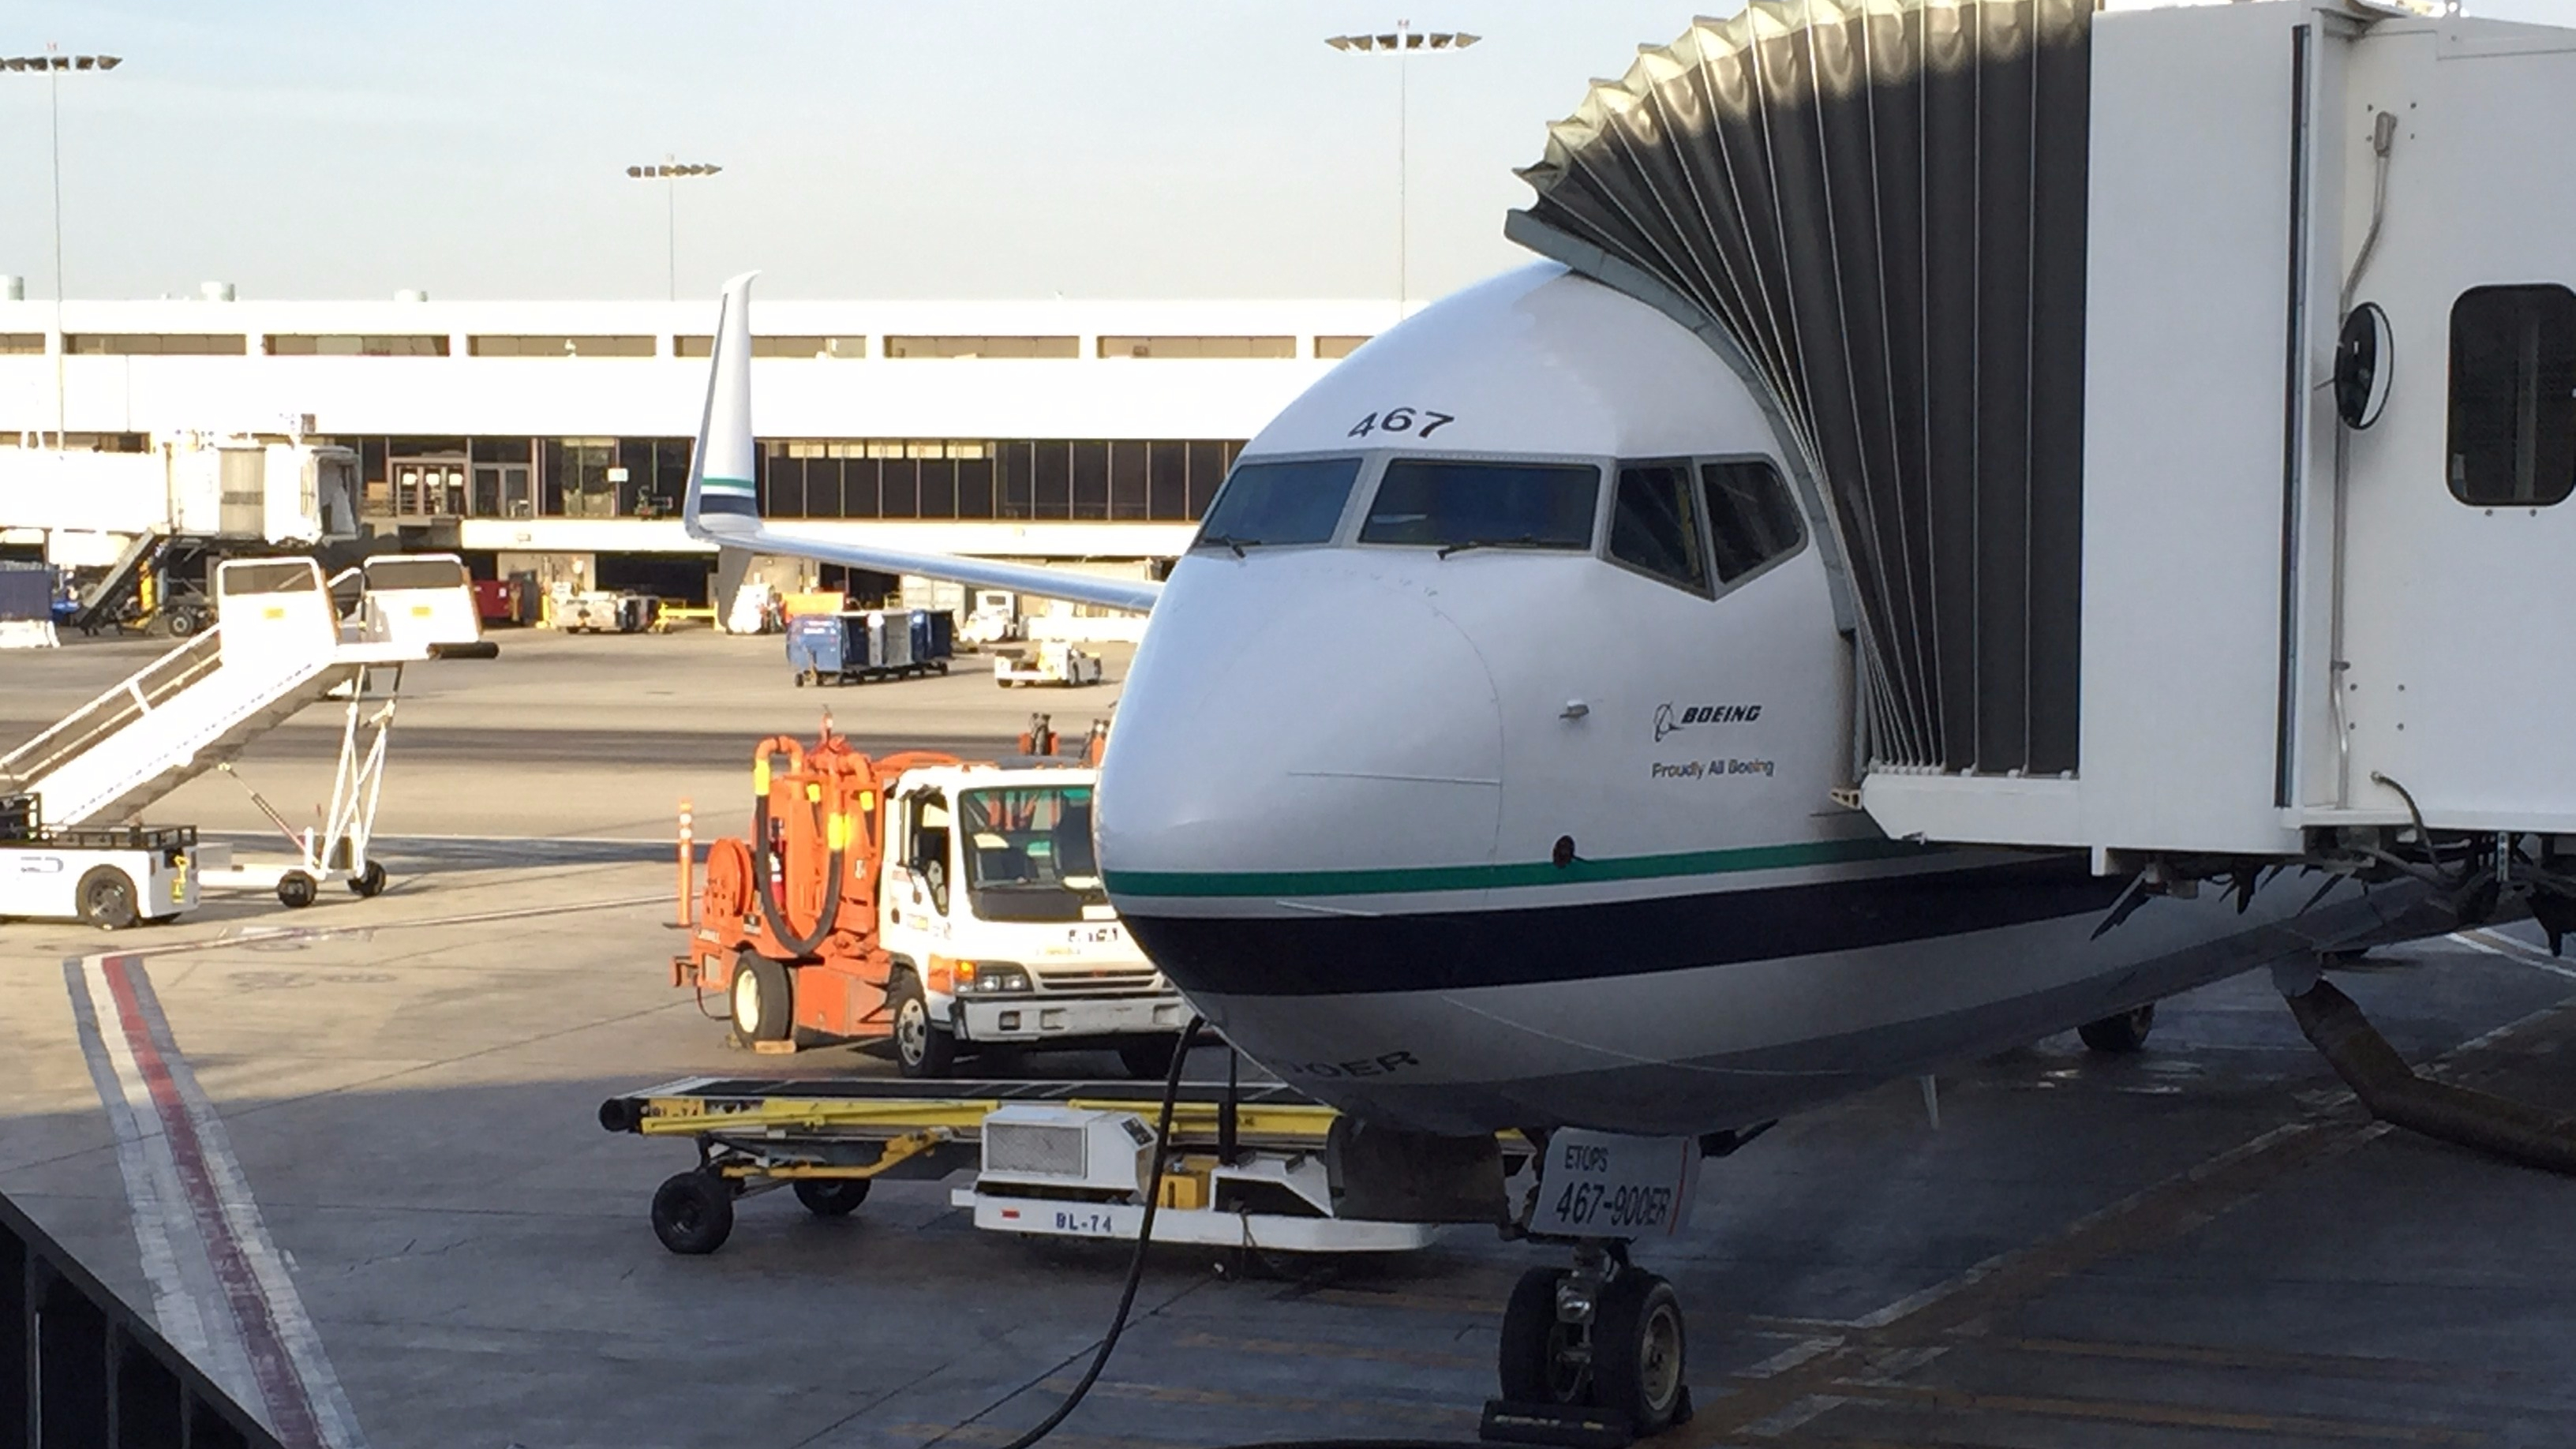 Review: Alaska Airlines Economy 737-900 Los Angeles to Seattle